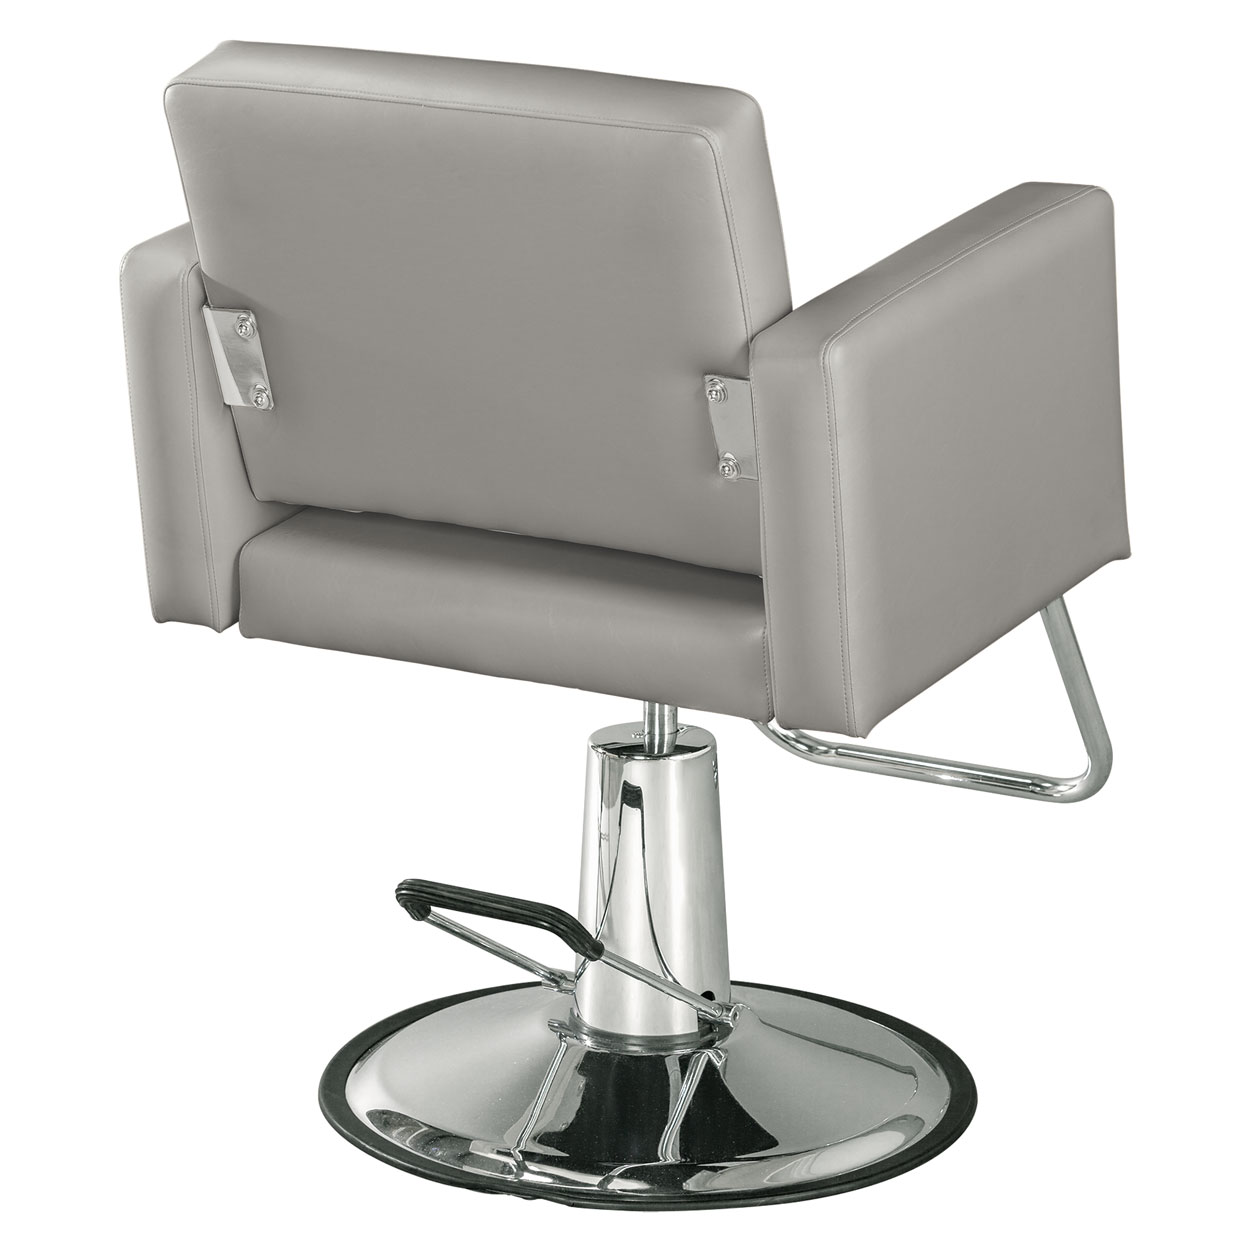 Pibbs 3406 Cosmo Hair Stylist Chair alternative product image 2